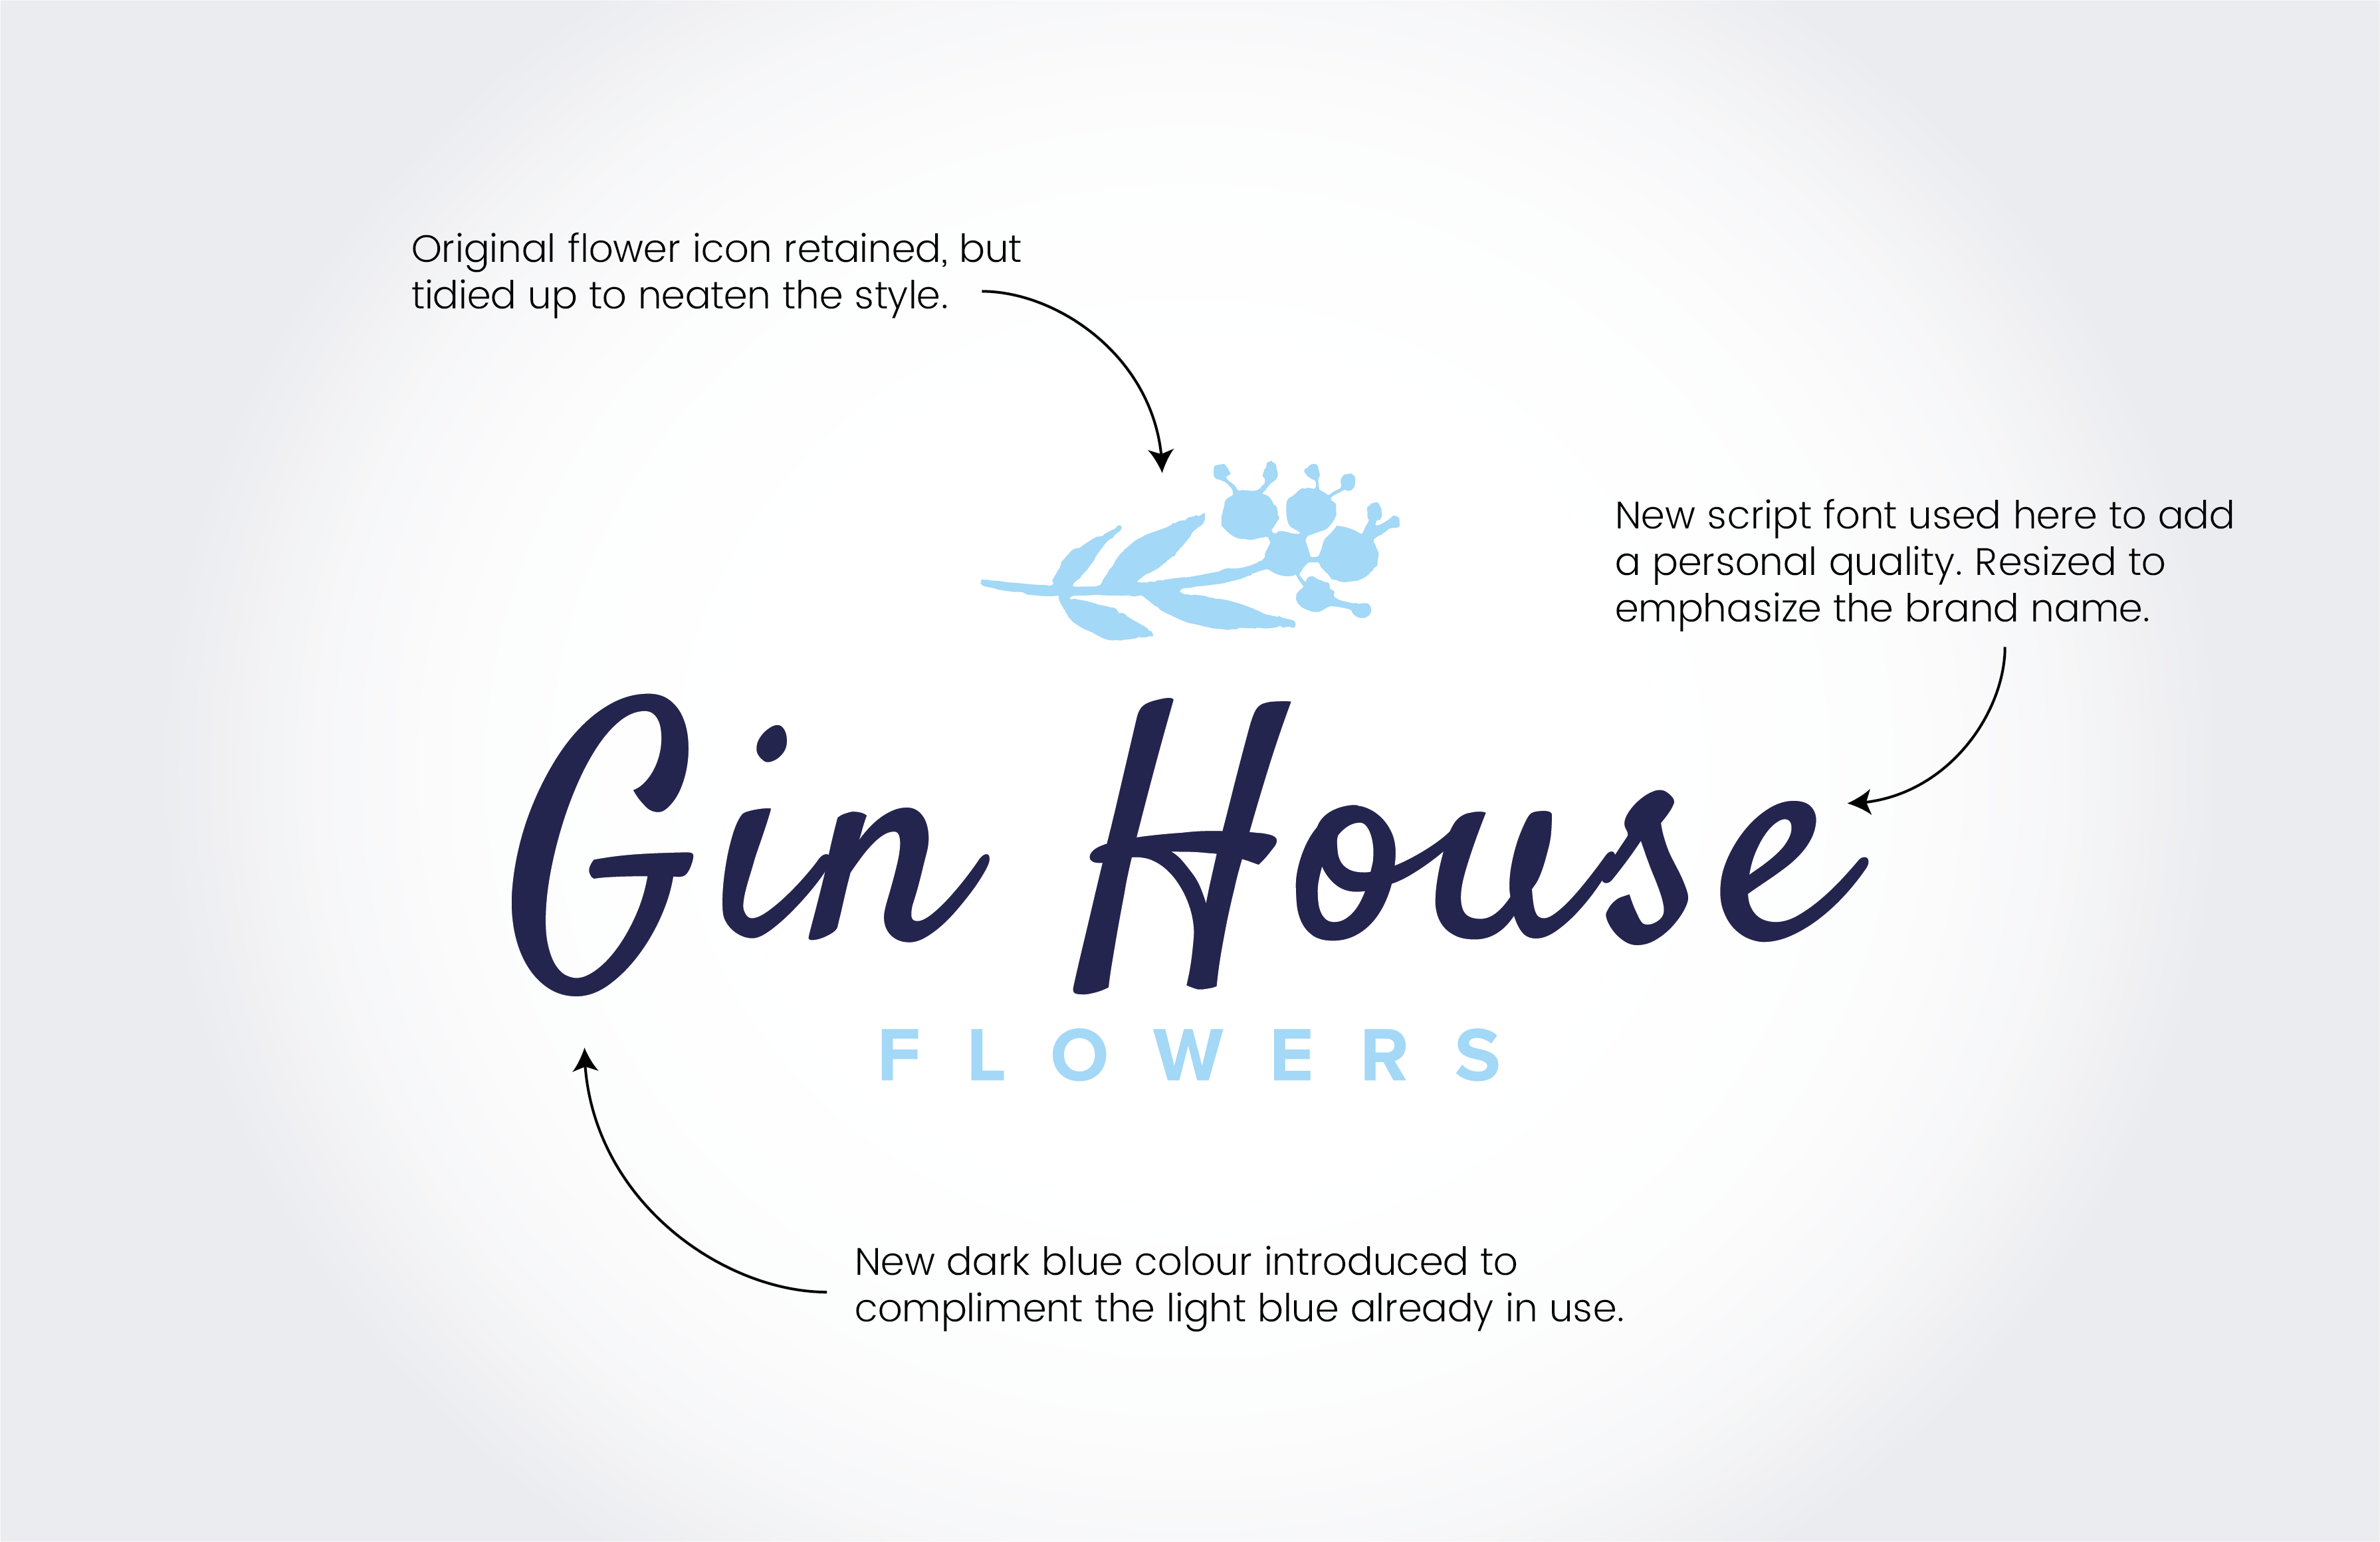 Gin House Flowers logo explanation